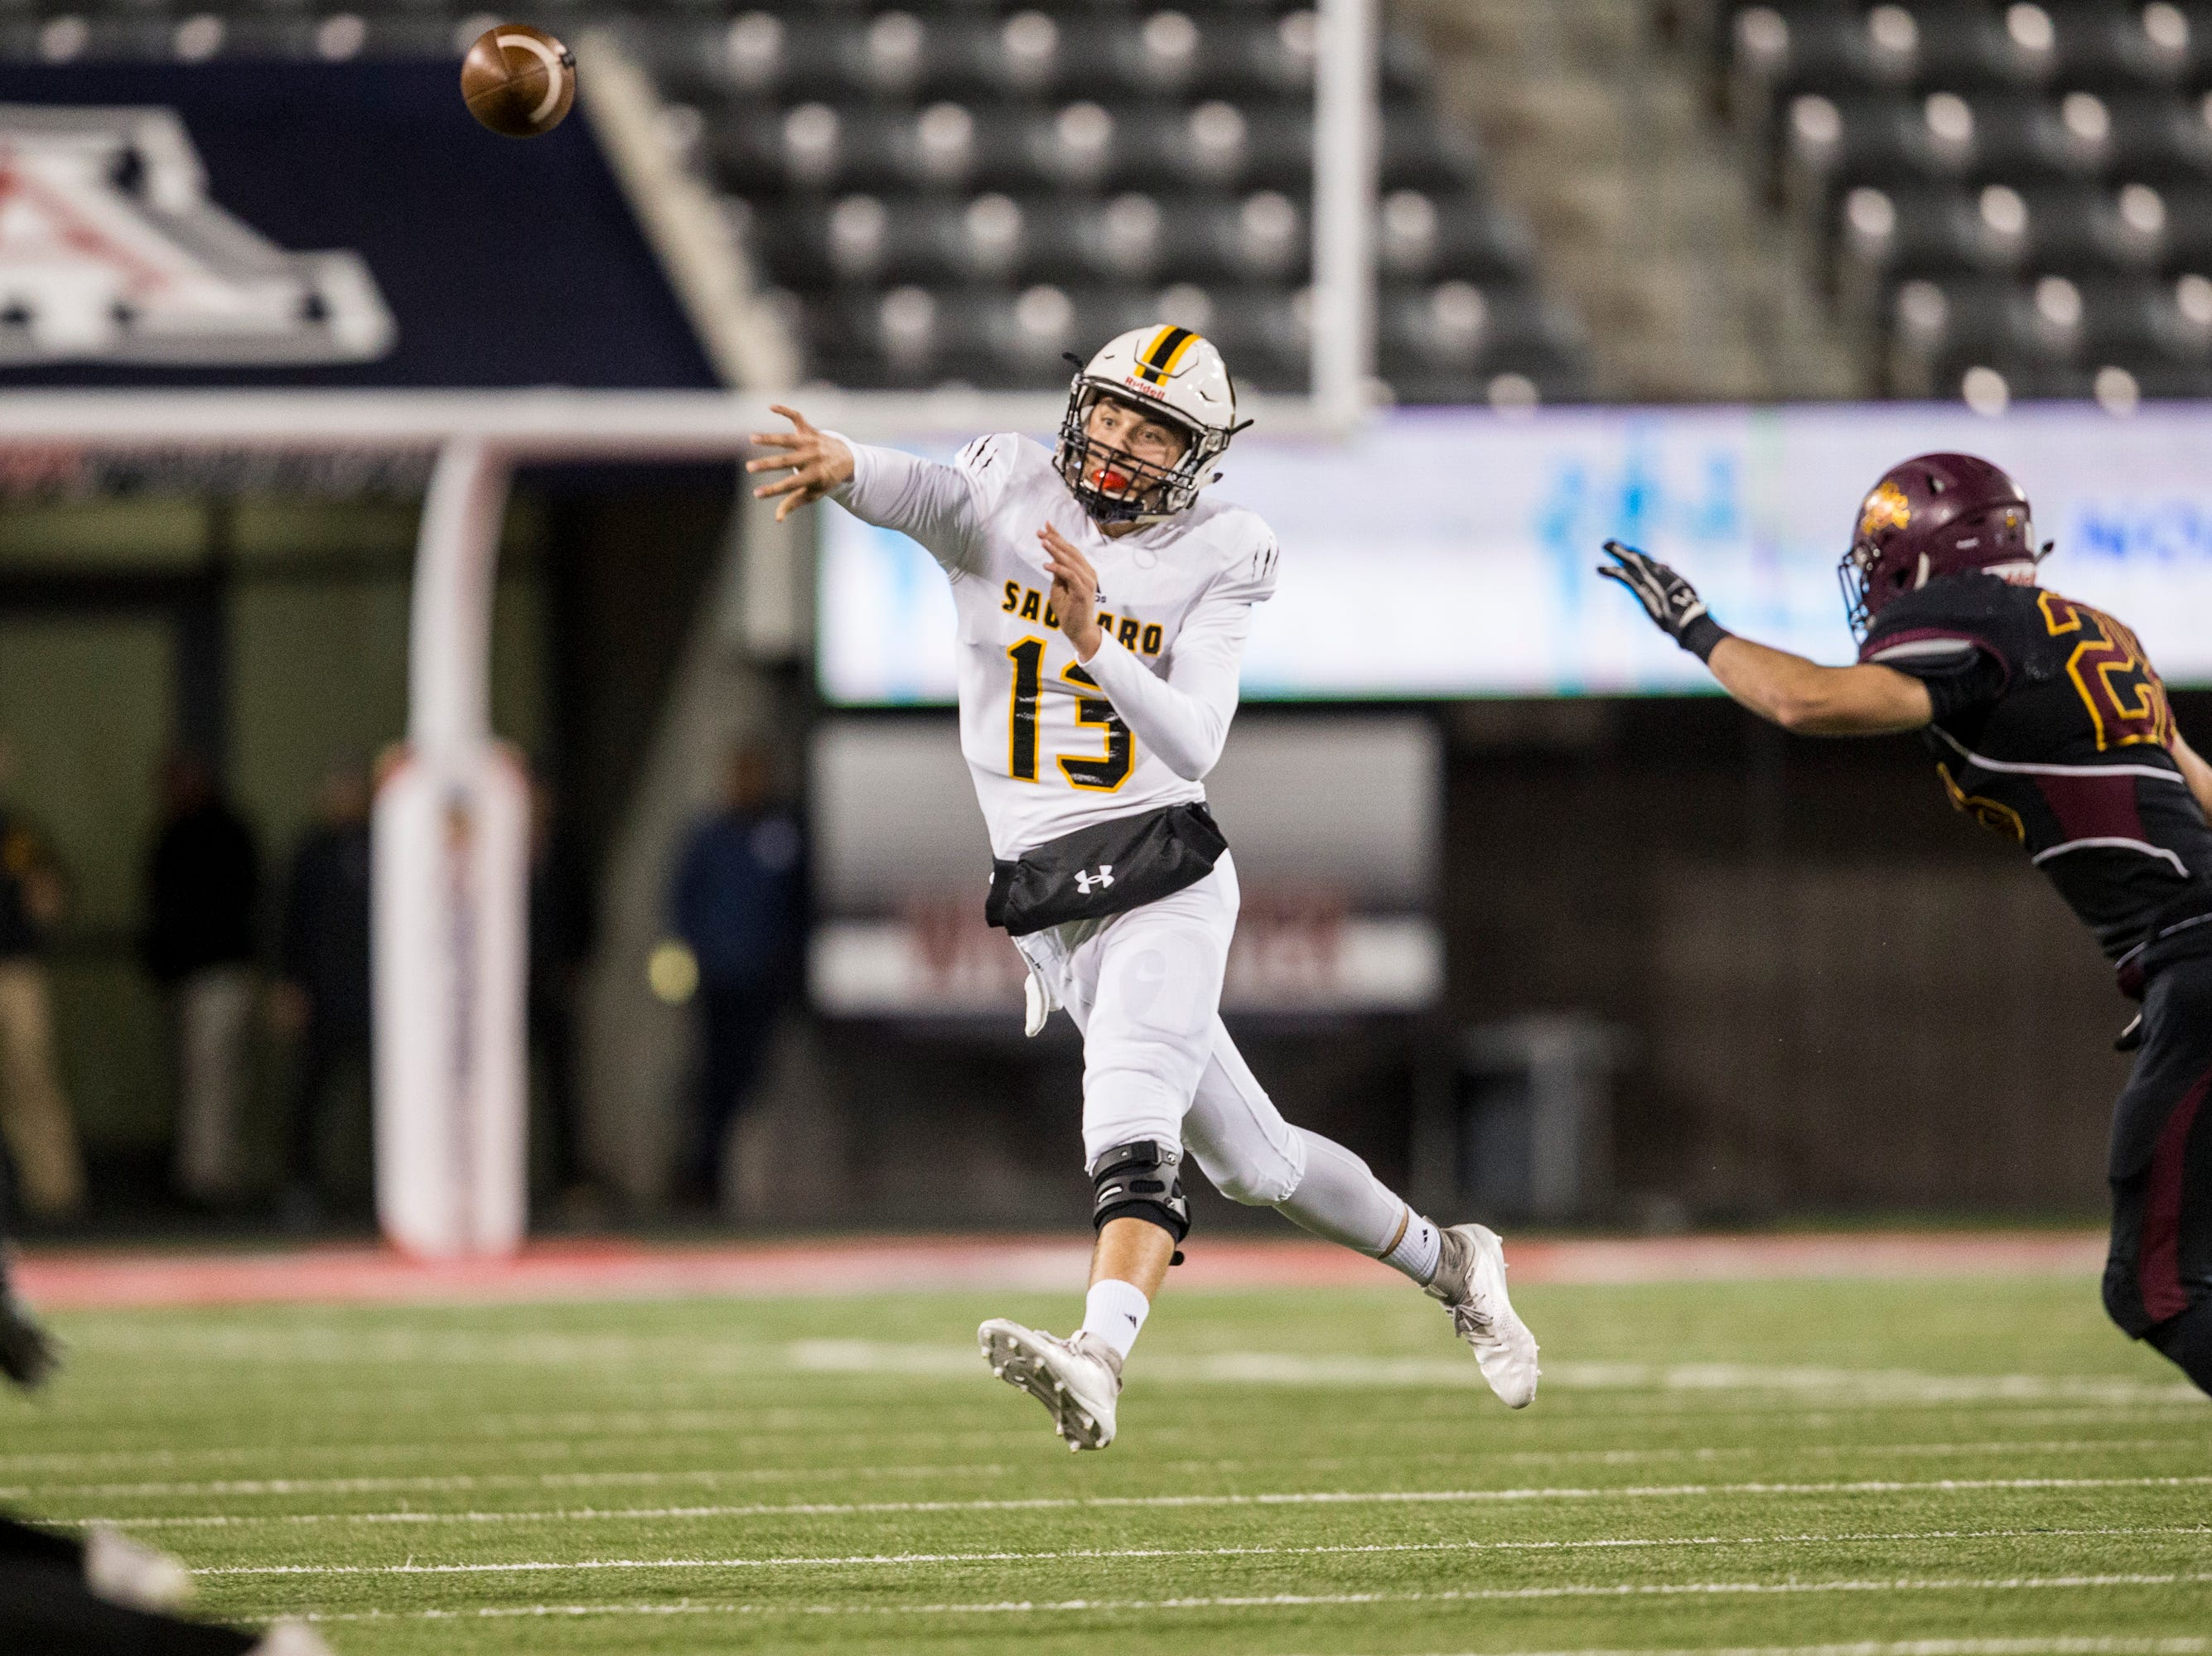 Saguaro's Tyler Beverett throws against Salpointe during the first half of the 4A State Championship on Friday, Nov. 30, 2018, at Arizona Stadium in Tucson, Ariz. 